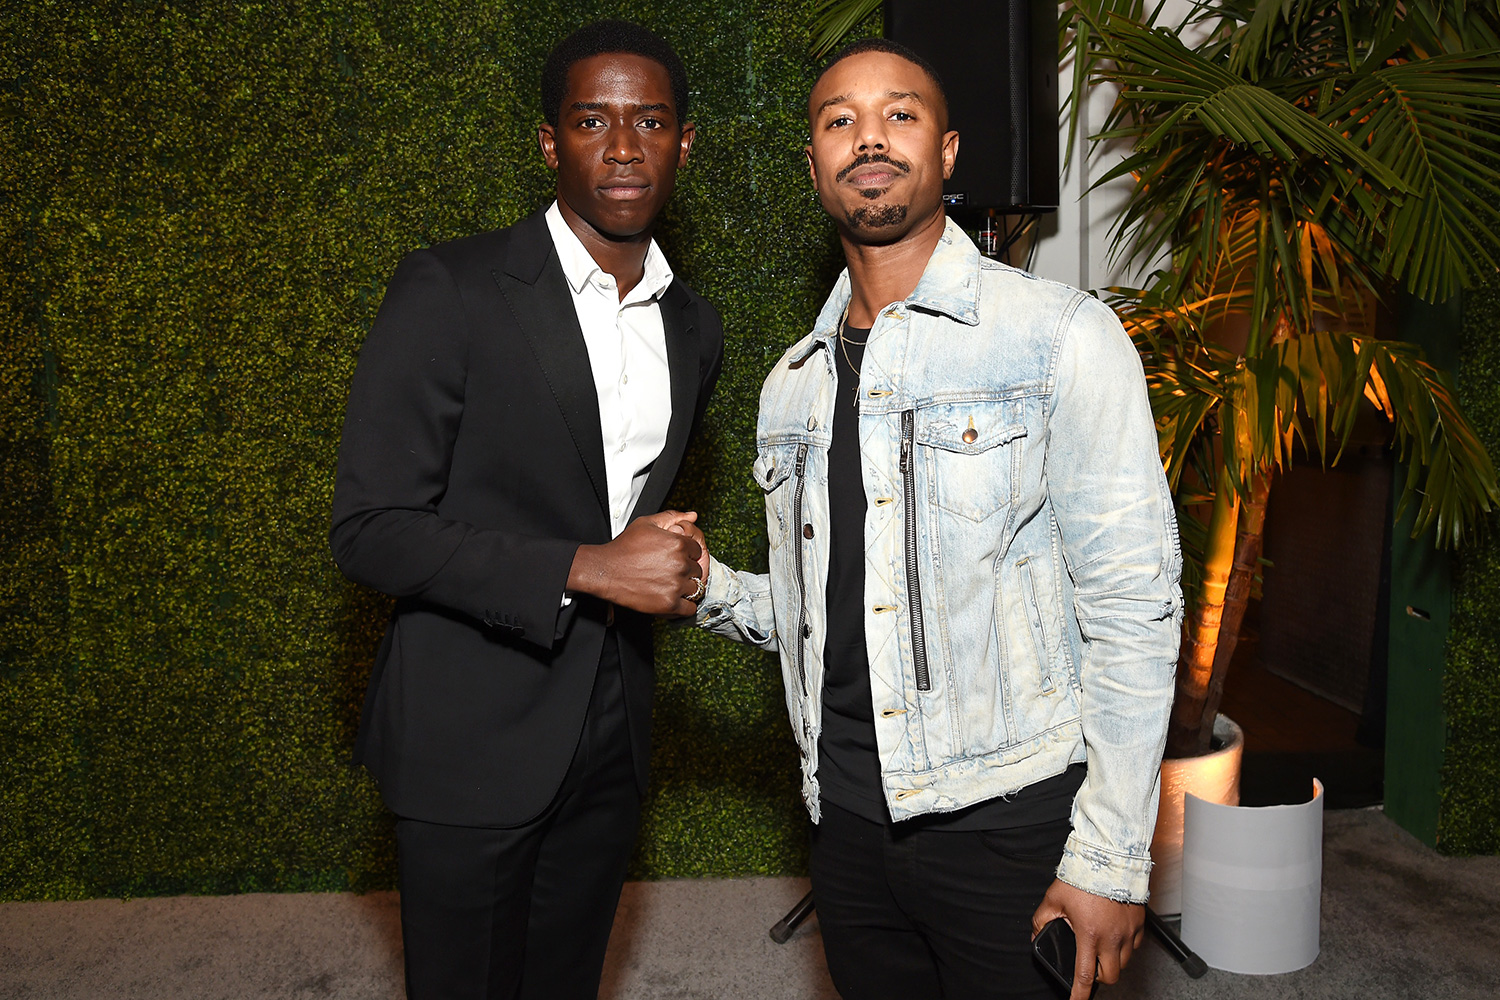 Damson Idris and Michael B. Jordan attend Grey Goose Toasts To A Year Of Victorious Filmmaking at The MACRO Pre-Oscars Party at Fig & Olive on February 06, 2020 in West Hollywood, California